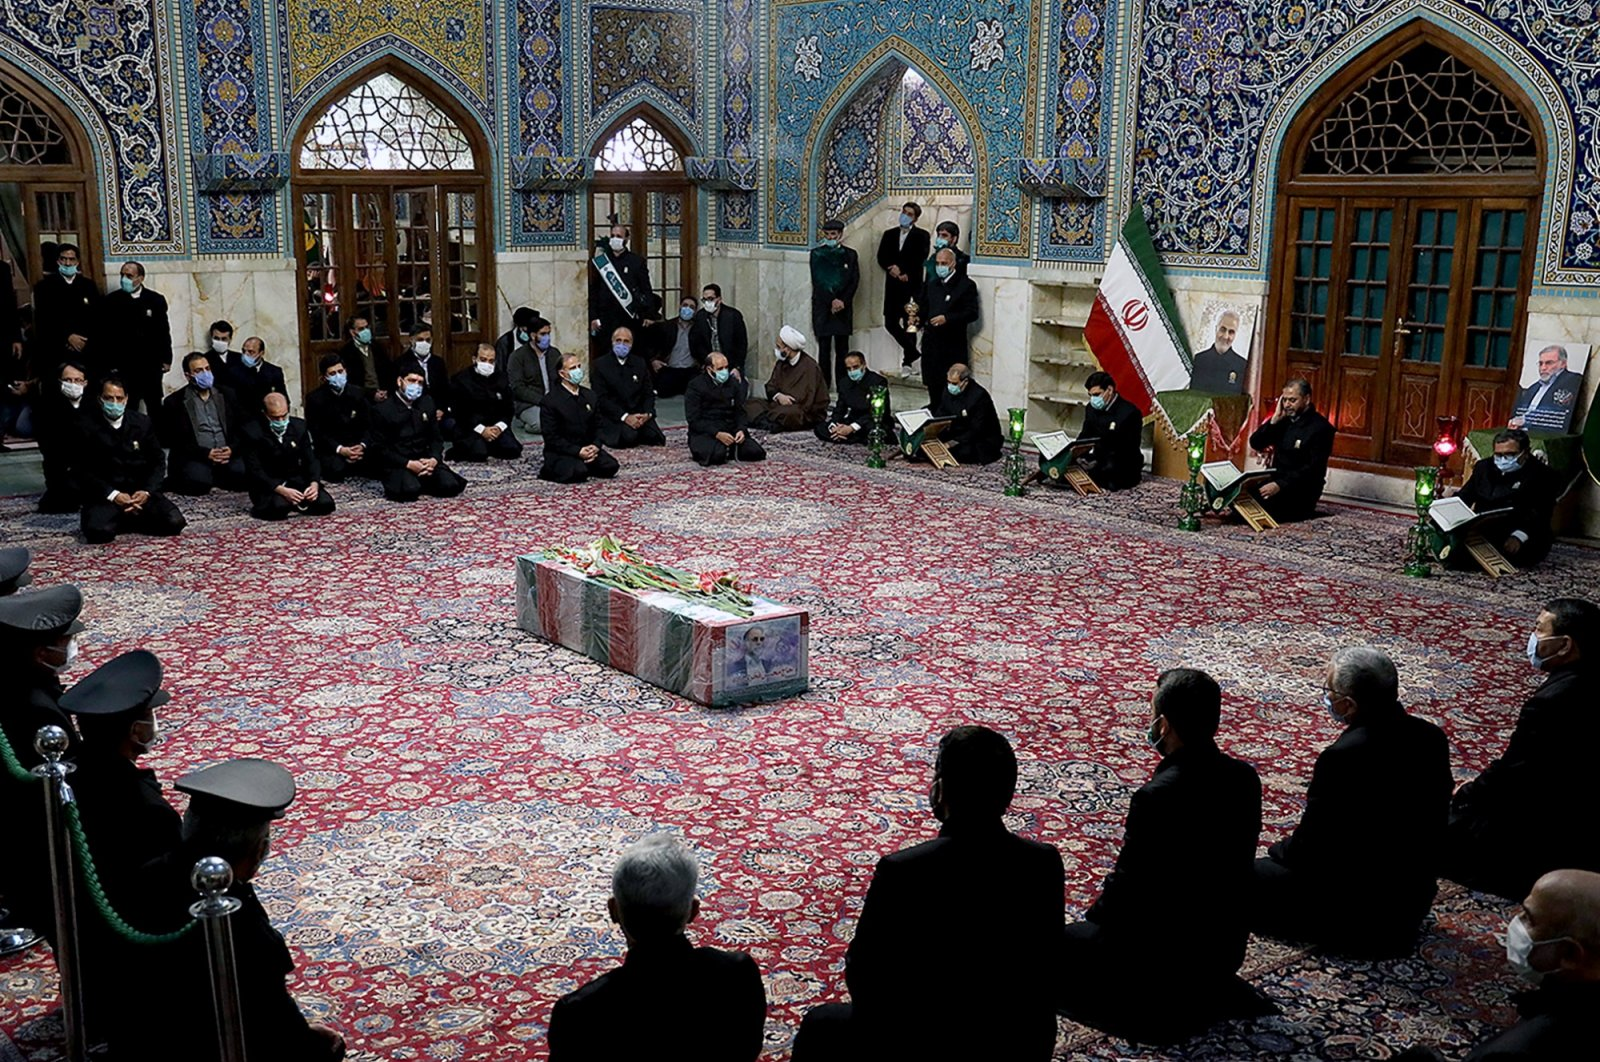 A coffin with an image of assassinated Iranian nuclear scientist Mohsen Fakhrizadeh can be seen among the servants of the holy shrine of Imam Reza in Mashhad, Iran, Nov. 29, 2020. (Reuters Photo)